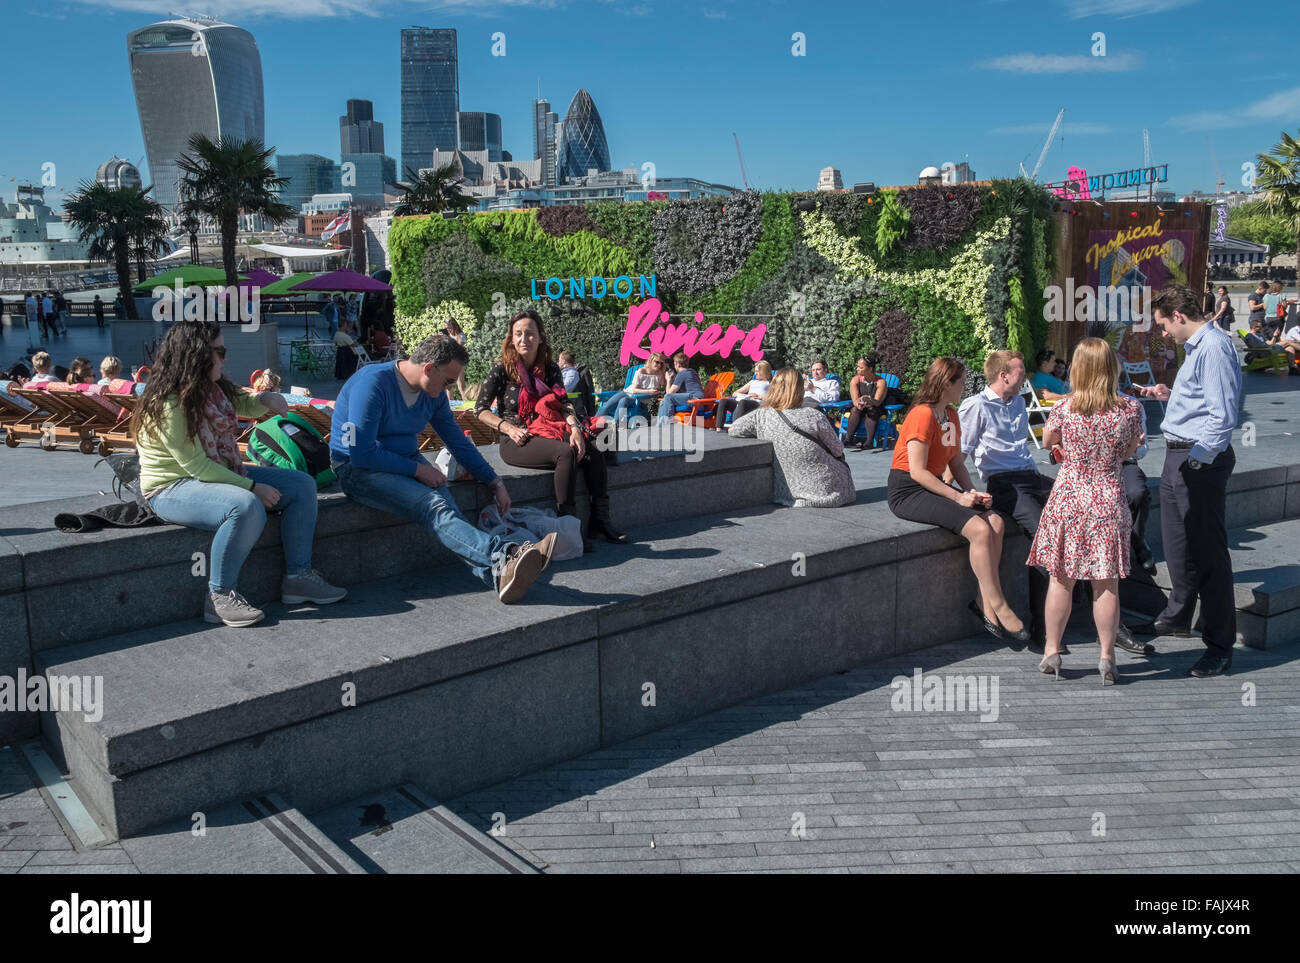 People relaxing and socialising in summer sunshine at London Riviera pop up restaurant, with London skyline in the - Stock Image